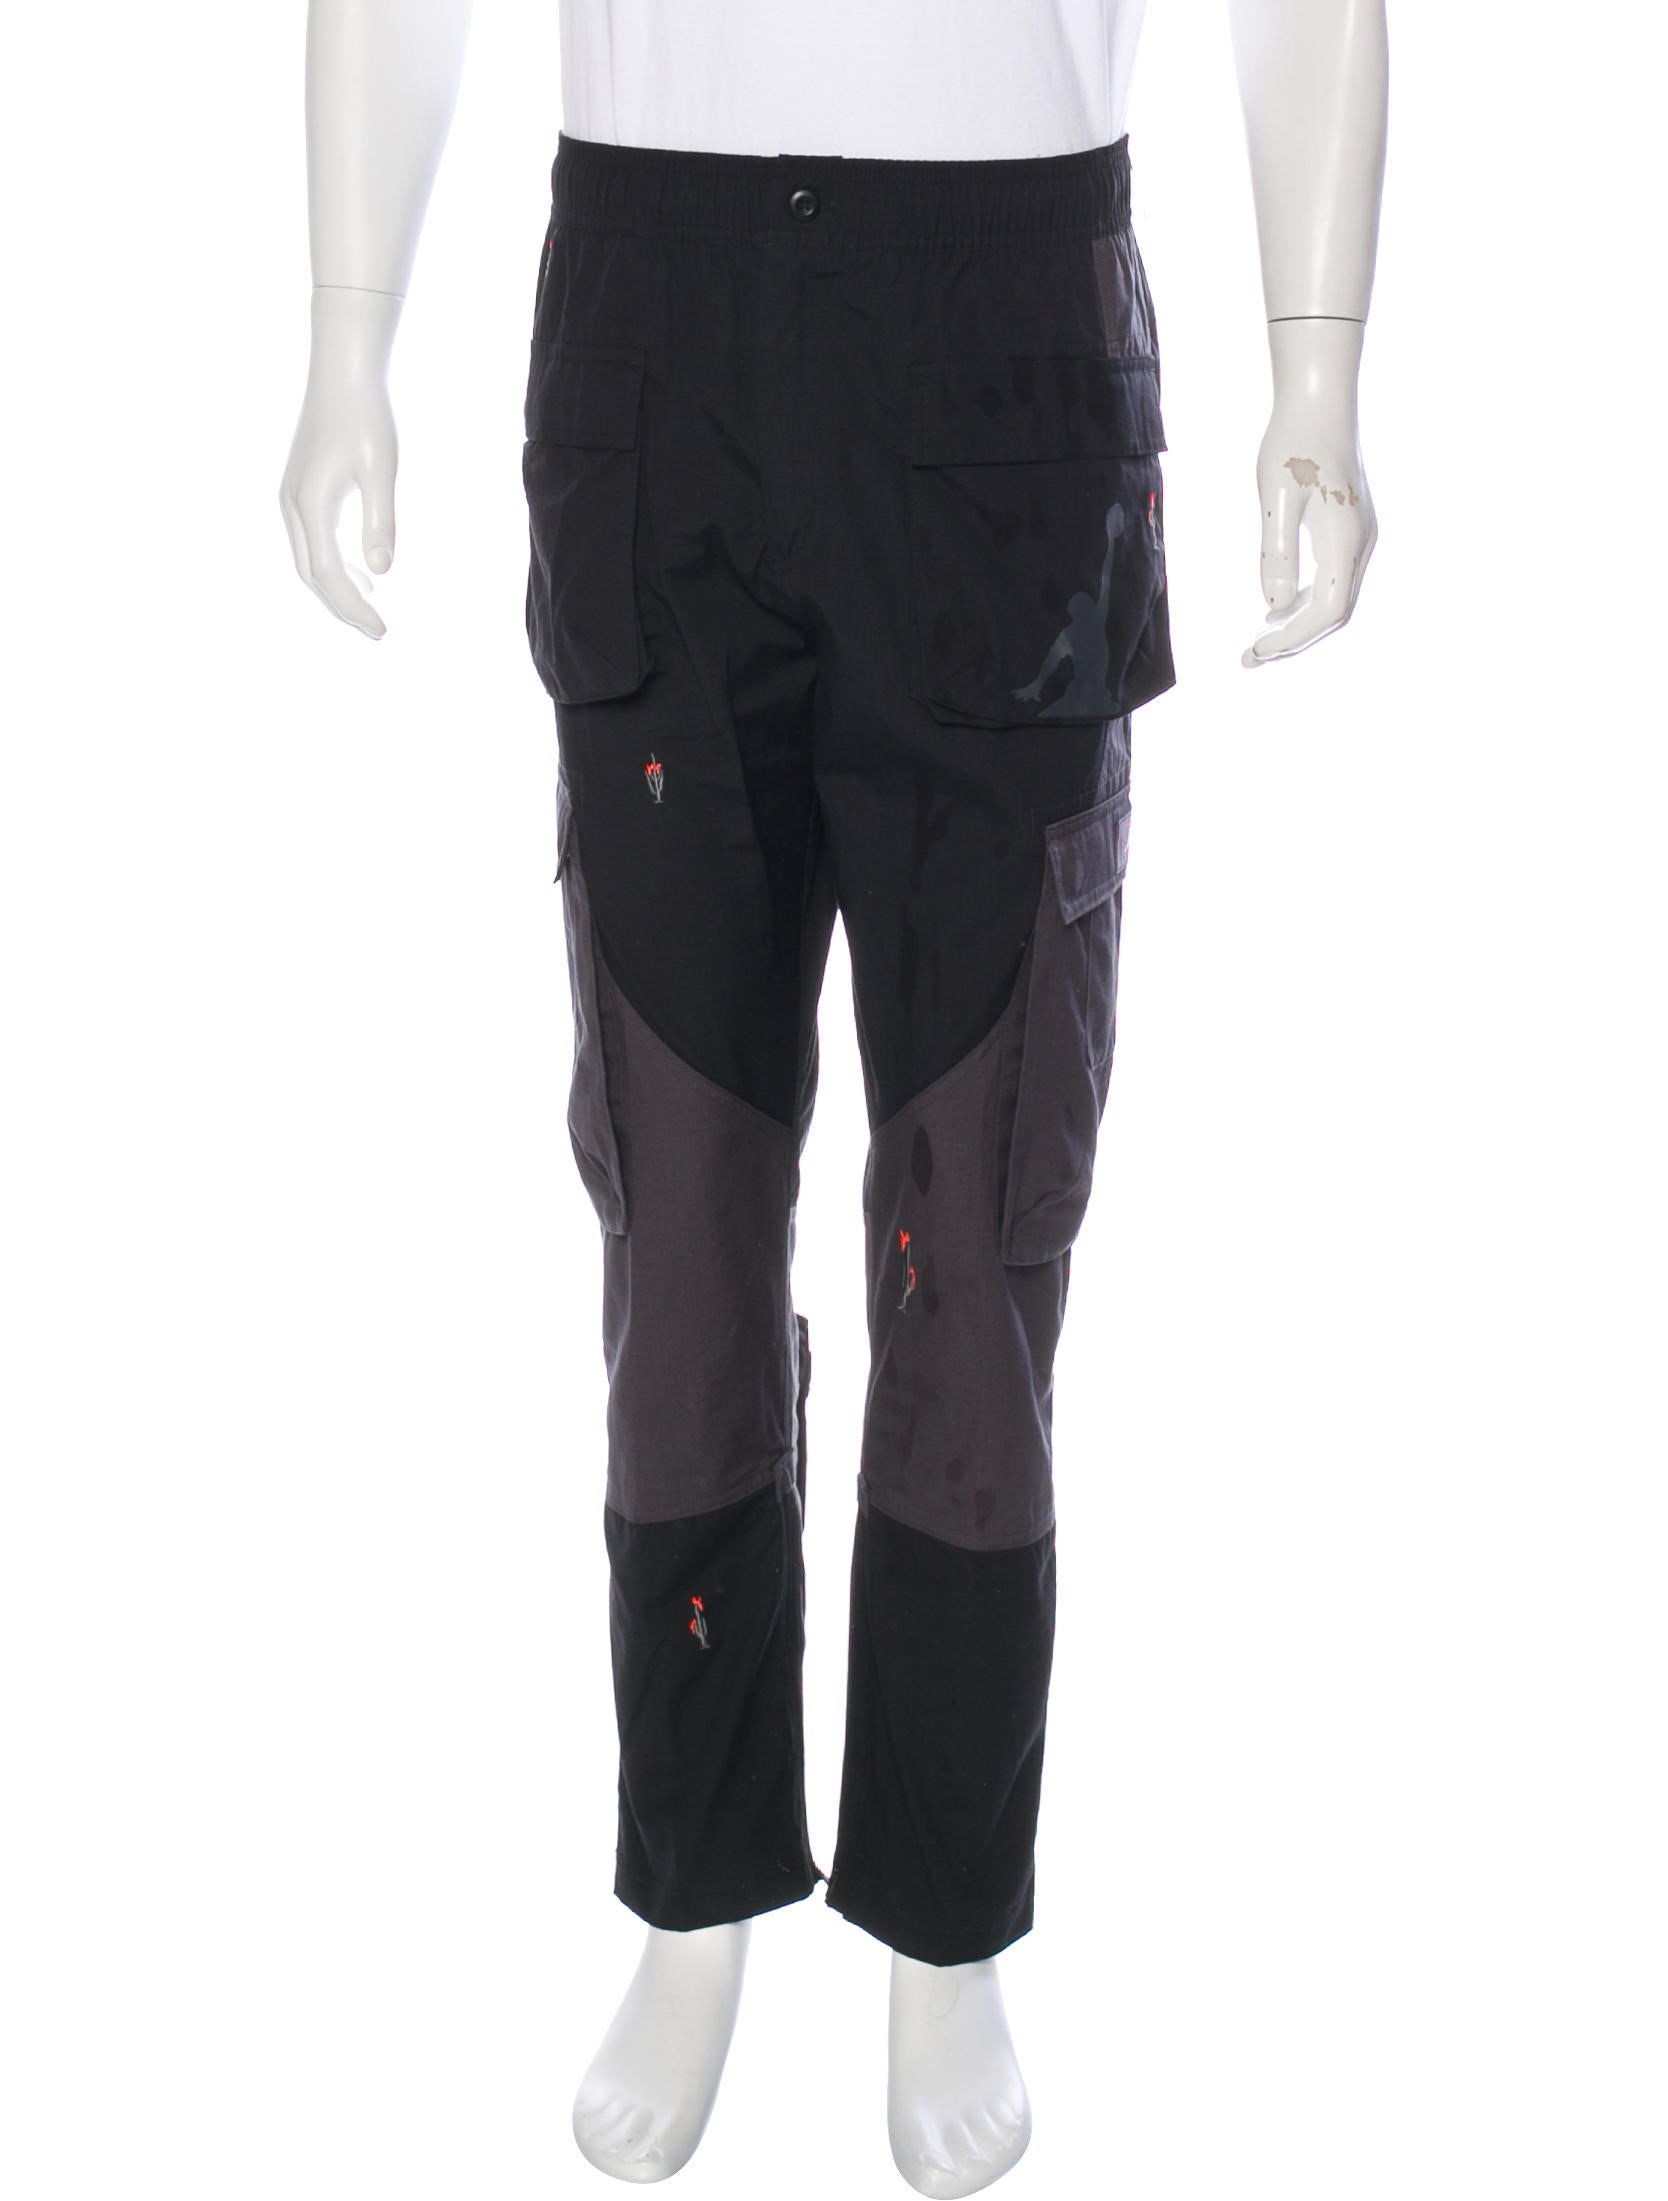 Cargo Bay Mens 2 Pack Checked Lounge Trousers